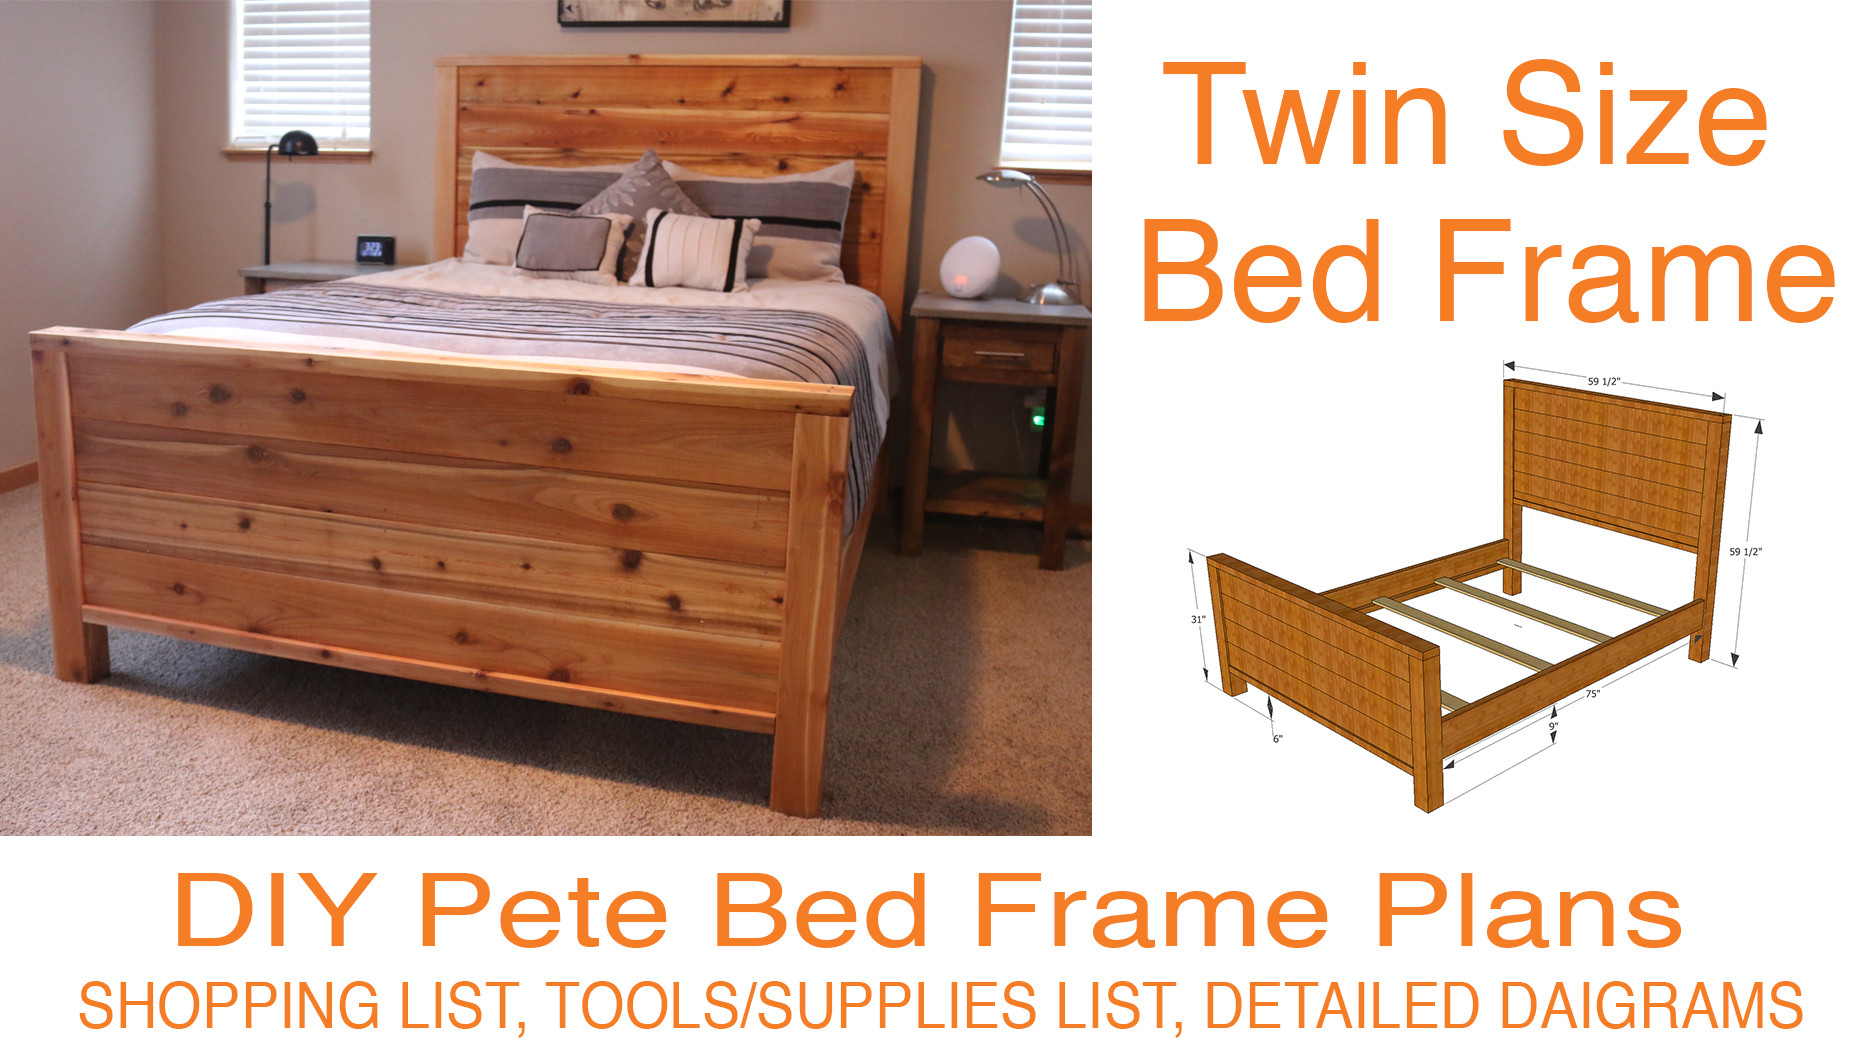 Best ideas about DIY Adjustable Bed . Save or Pin DIY Bed Frame Plans How to Make a bed frame with DIY Pete Now.